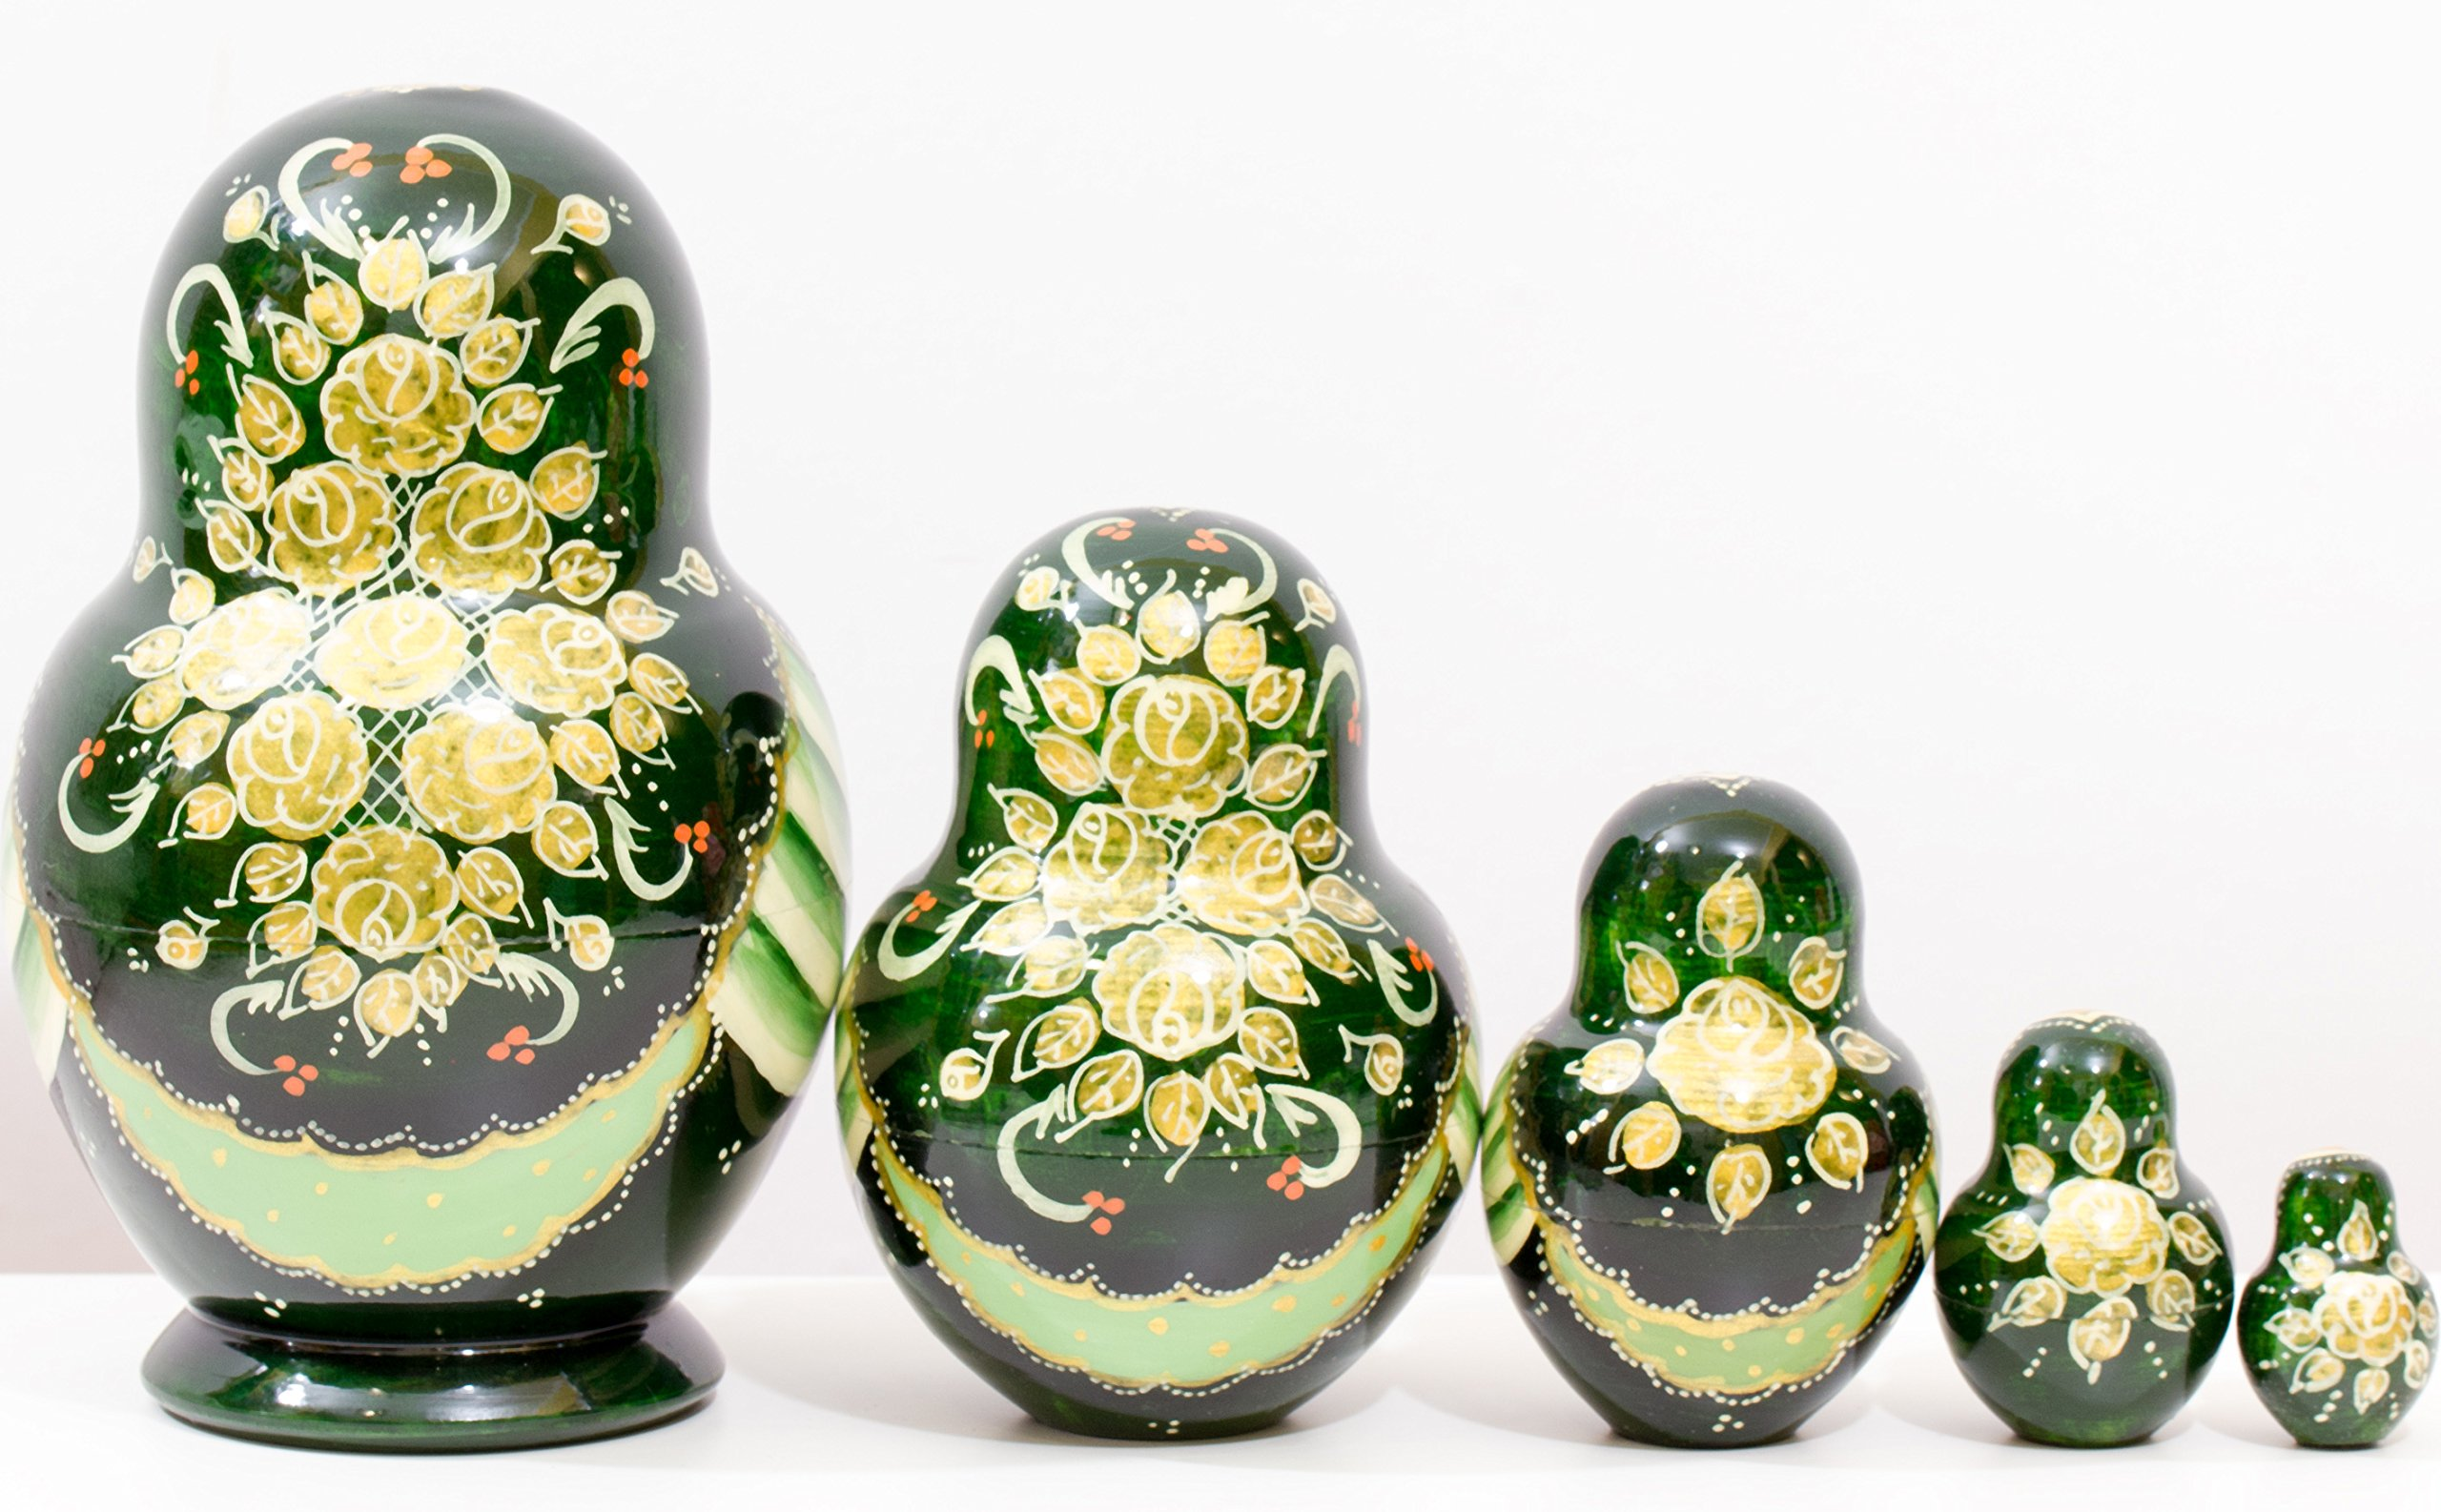 Russian Nesting Doll - Anastasia - Hand Painted in Russia - Traditional Matryoshka Babushka (6``(5 Dolls in 1), Green) by craftsfromrussia (Image #3)